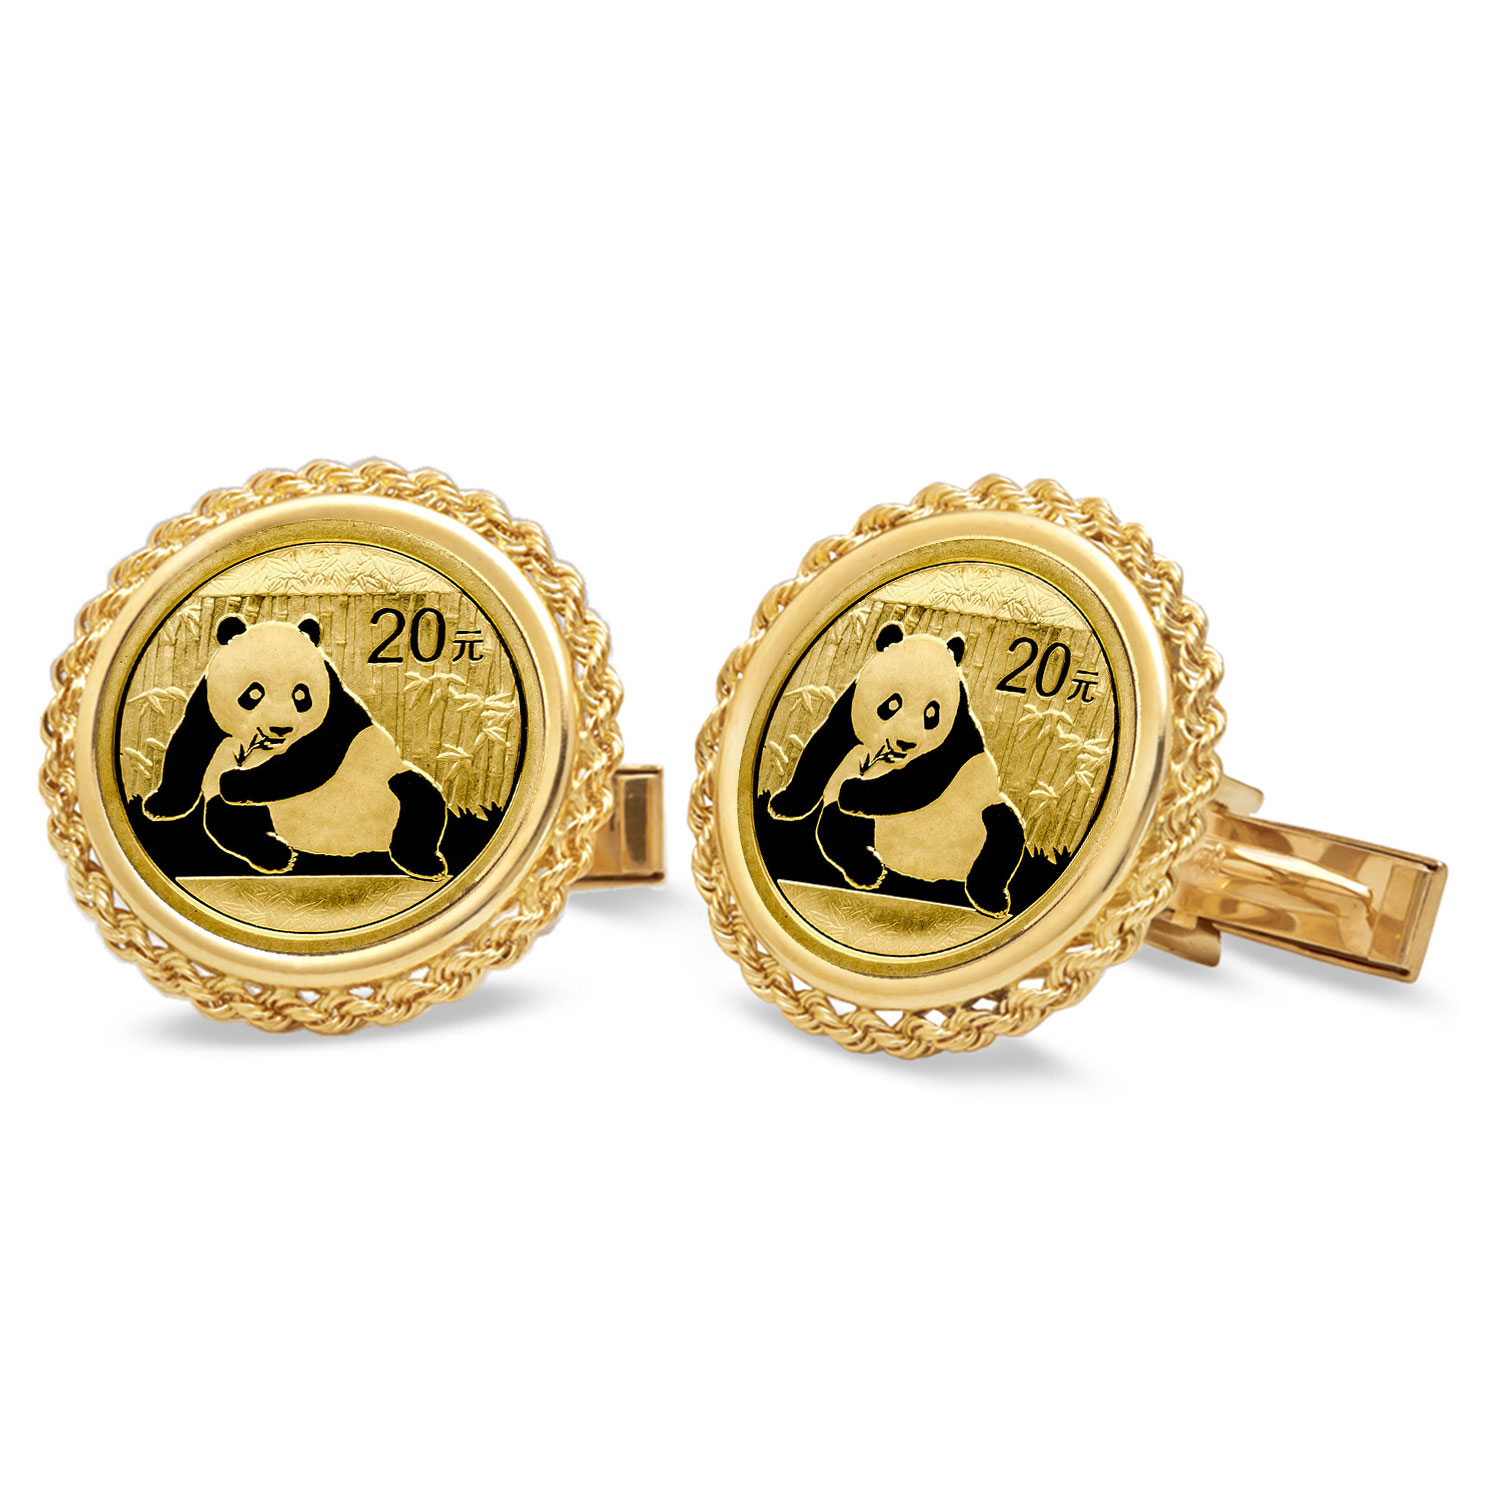 2015 1/20 oz Gold Panda Cuff Links (Polished Rope)